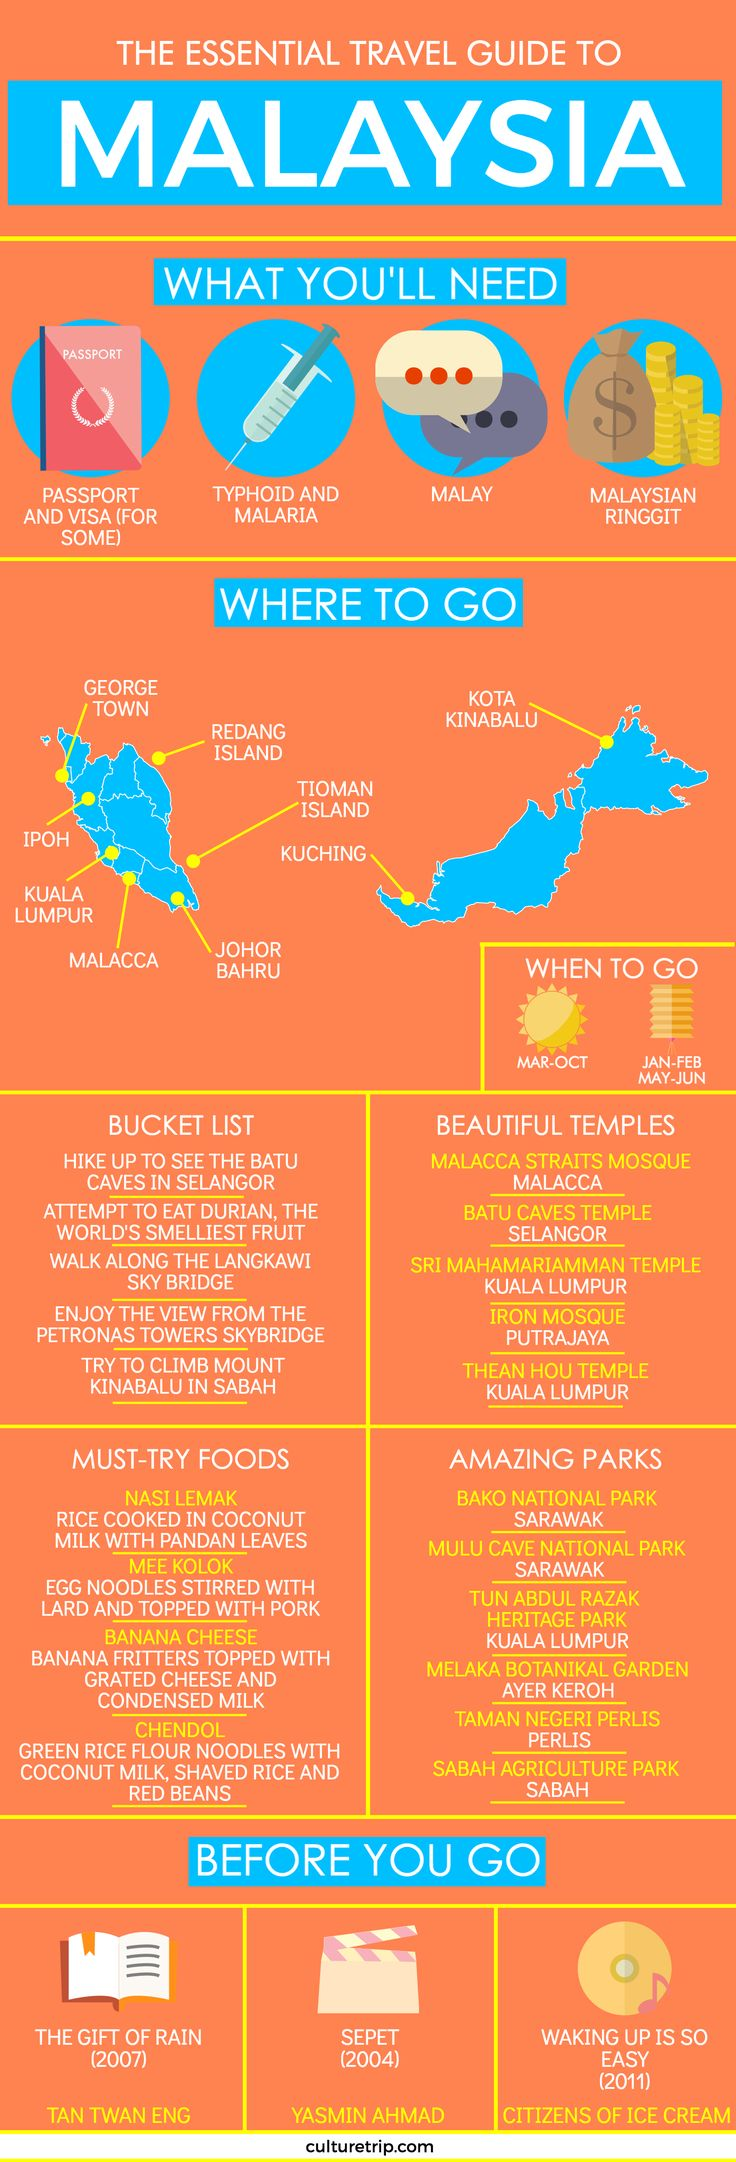 The Ultimate Travel Guide To Malaysia